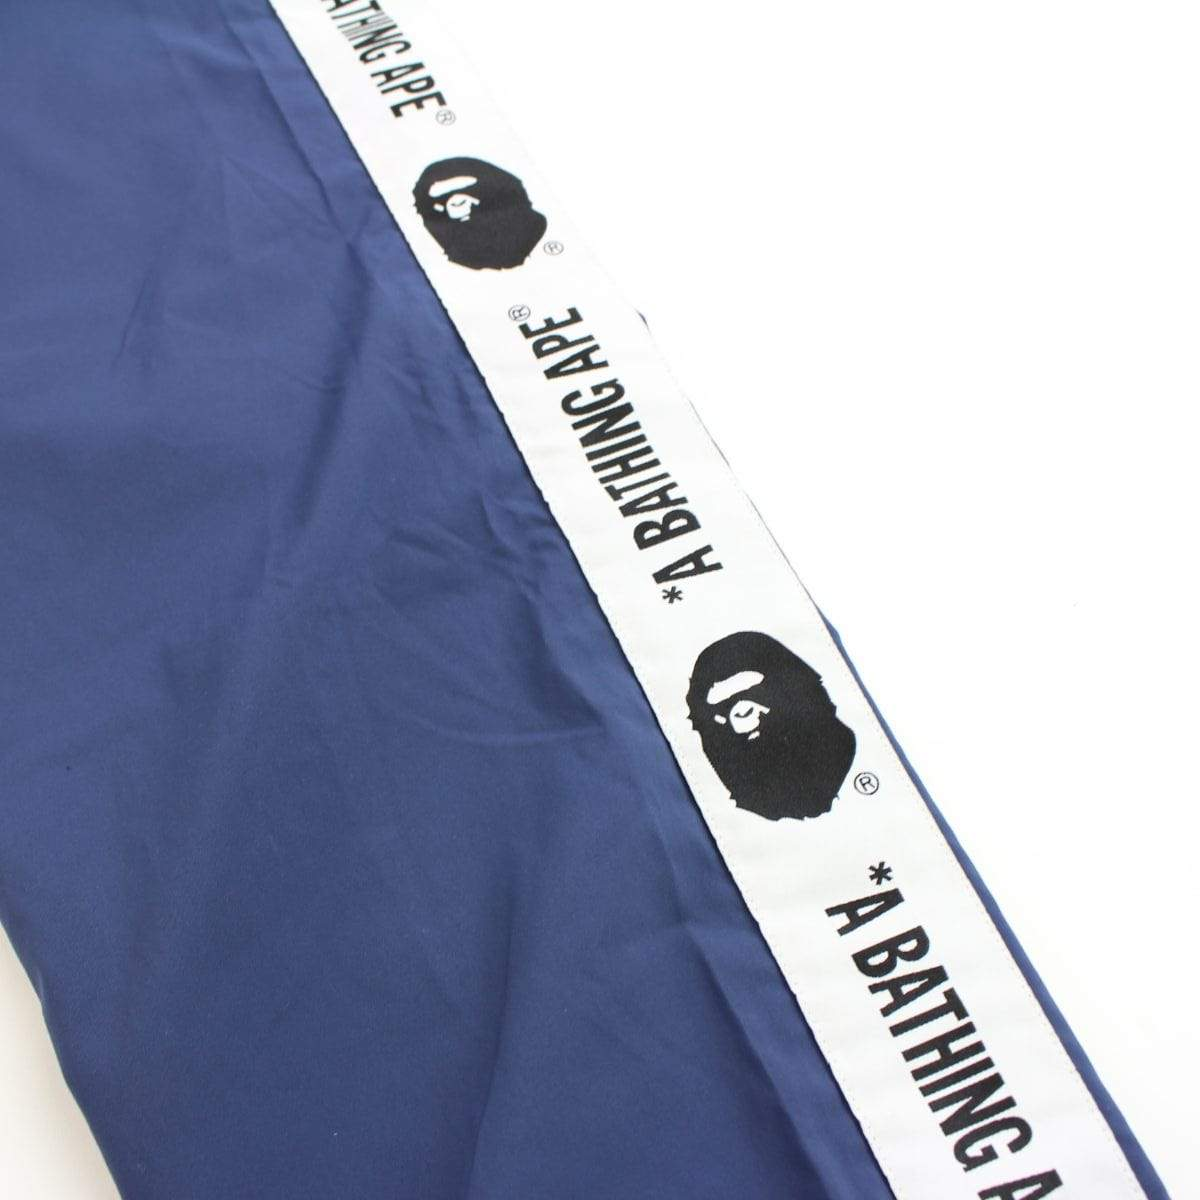 bape side strip track pants navy - SaruGeneral